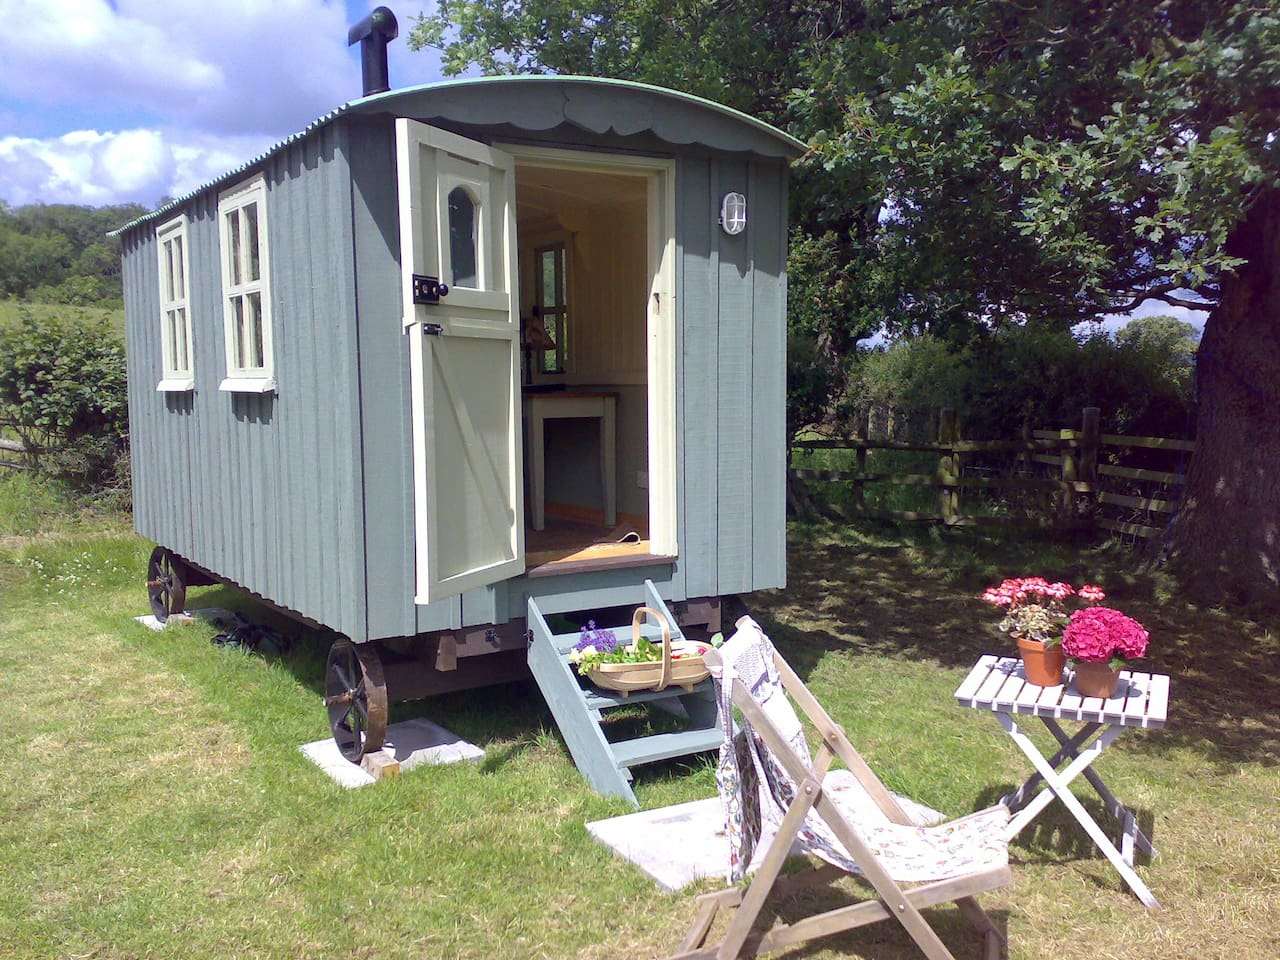 The beautiful shepherds hut in our meadow